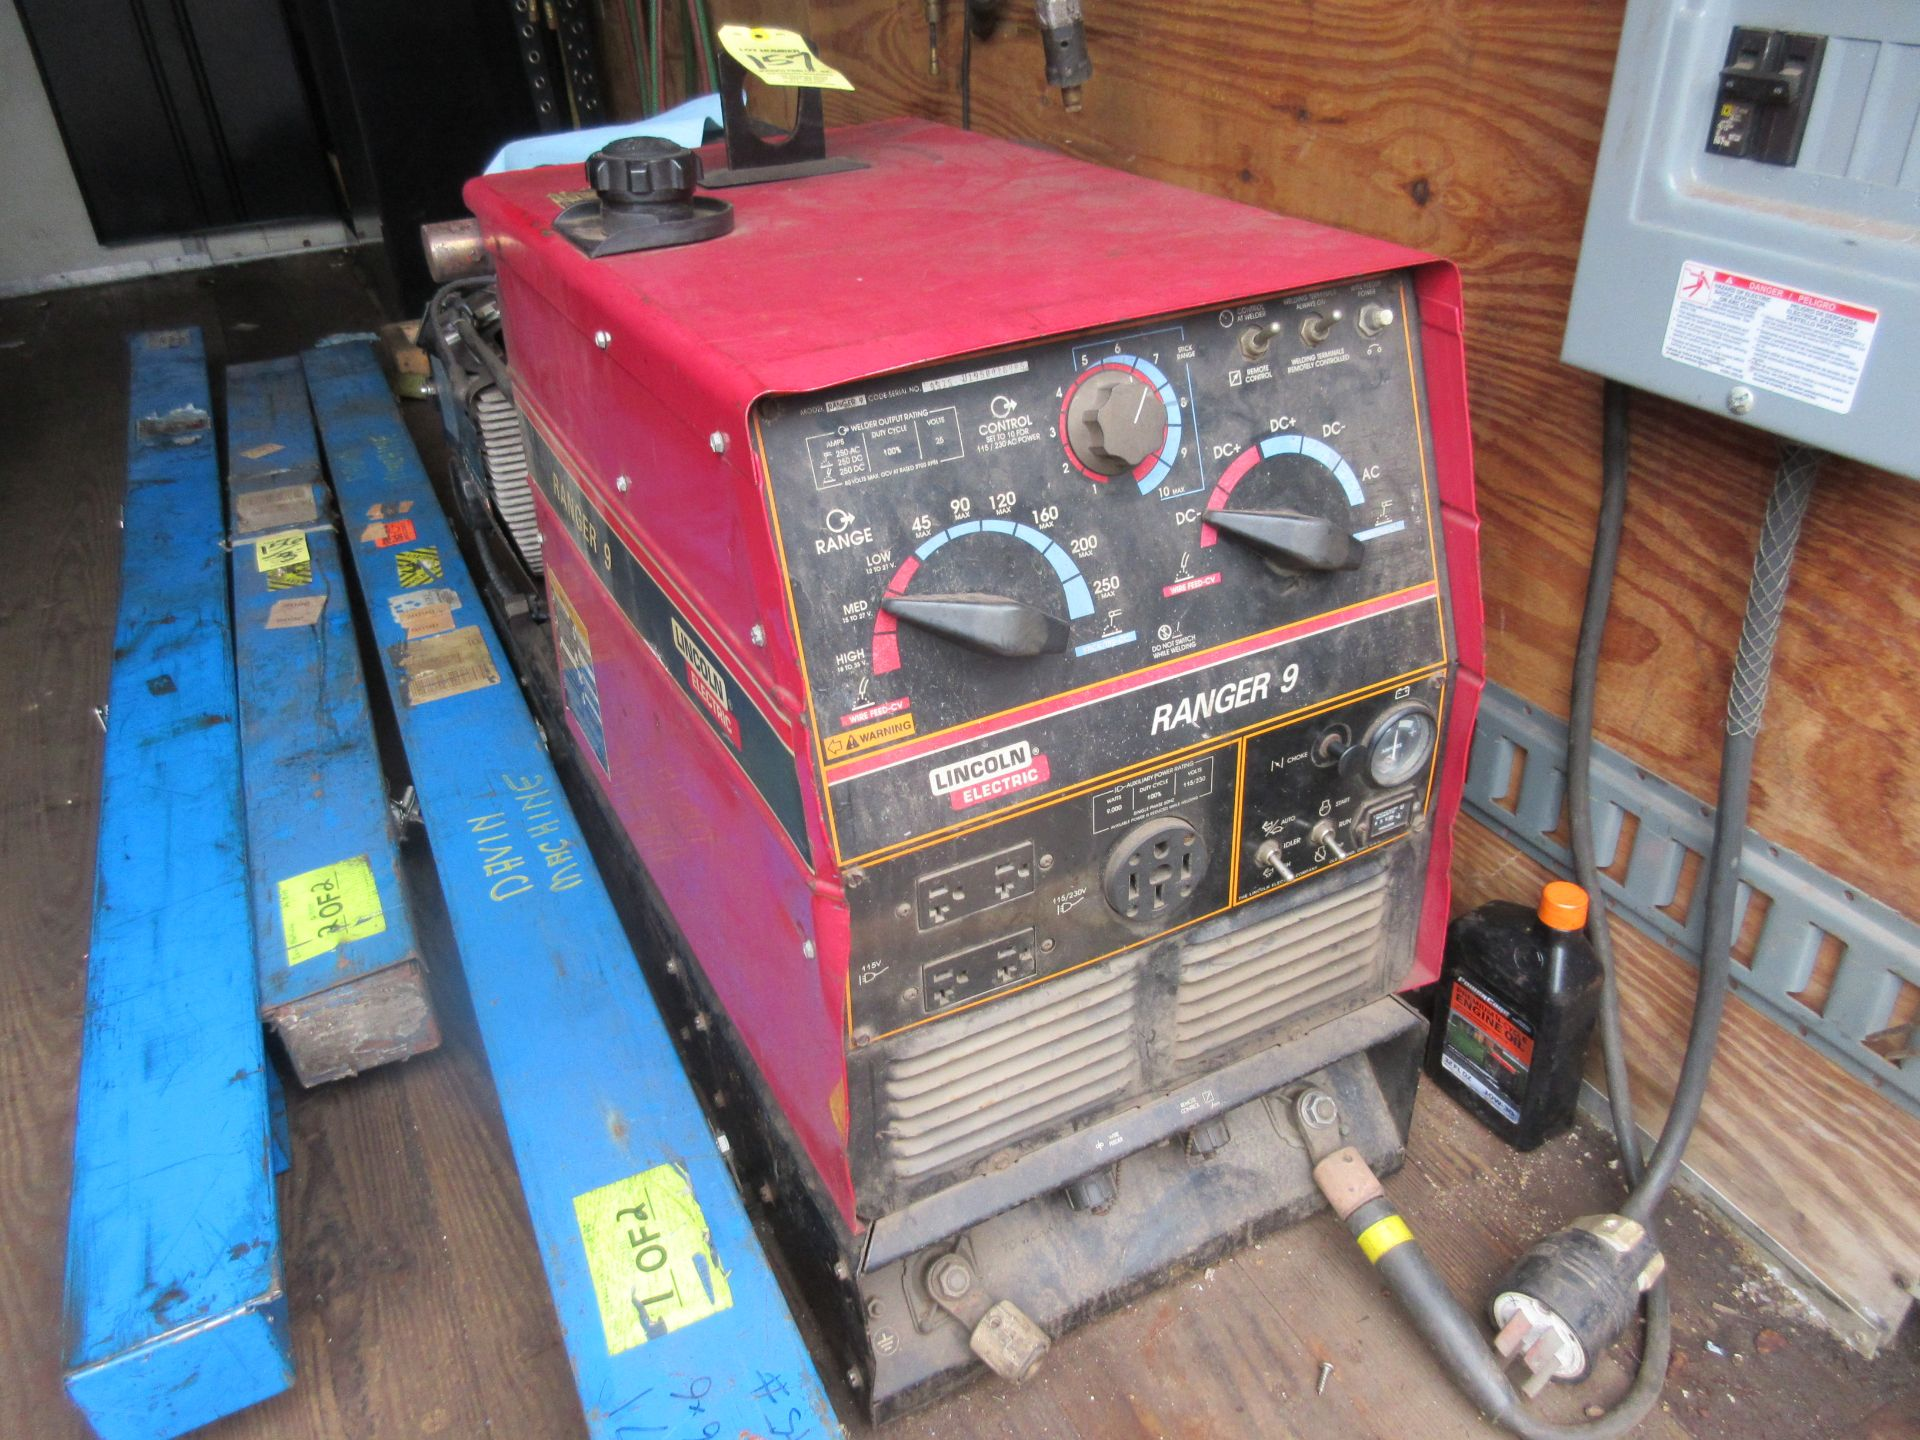 (1) Lincoln Ranger 9 Welder Generator This lot is being sold subject to the bulk bid lot number